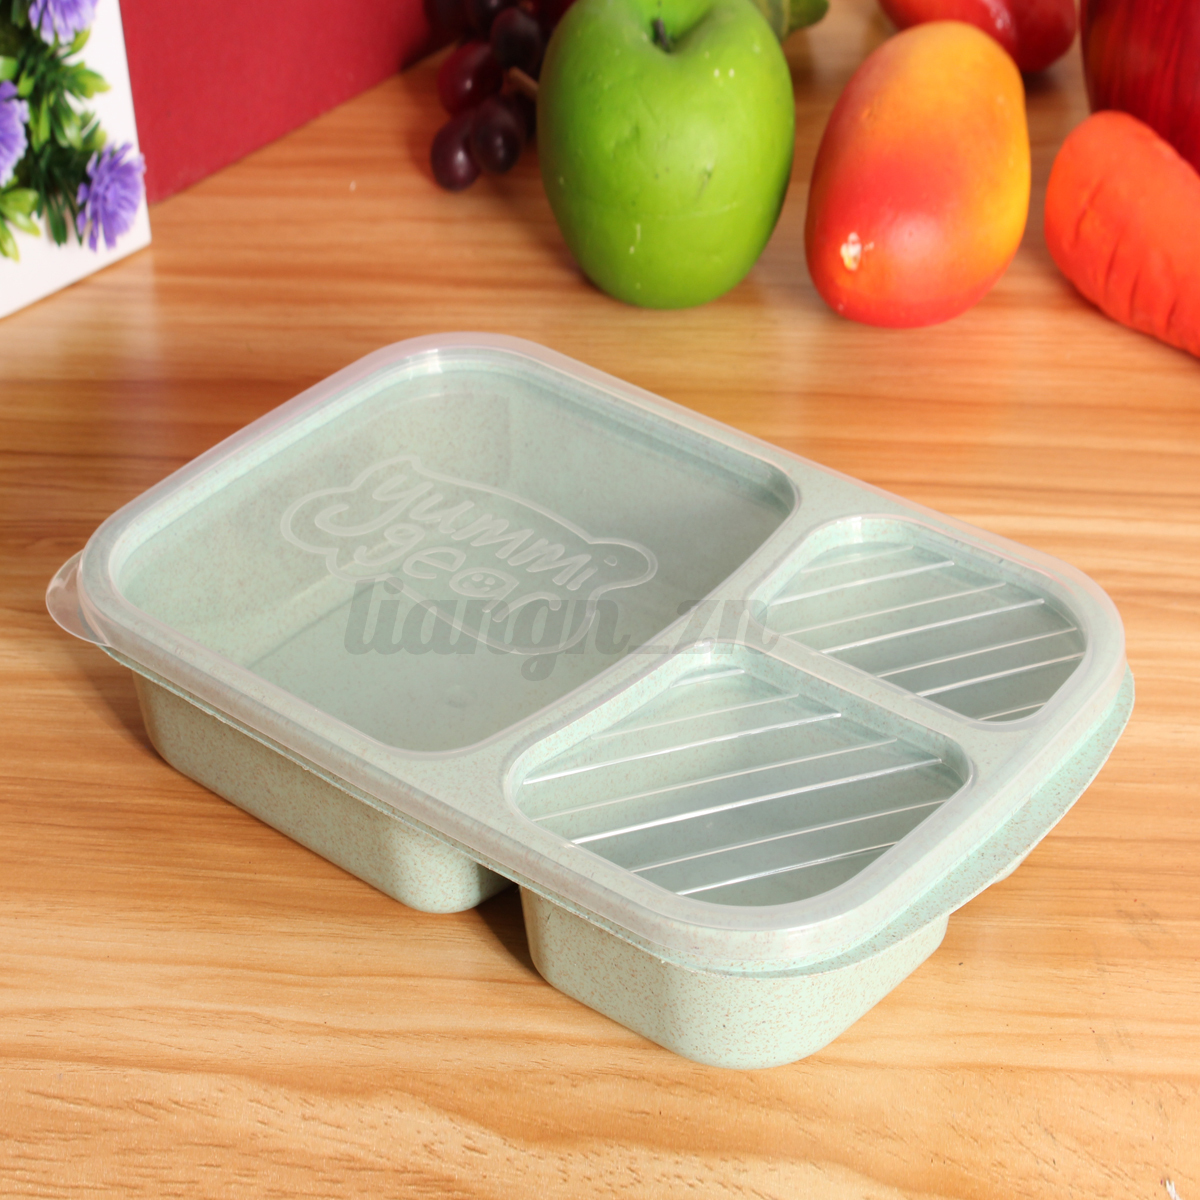 3 compartiments bo te repas go ter d jeuner bento lunch box isotherme cuill re ebay. Black Bedroom Furniture Sets. Home Design Ideas